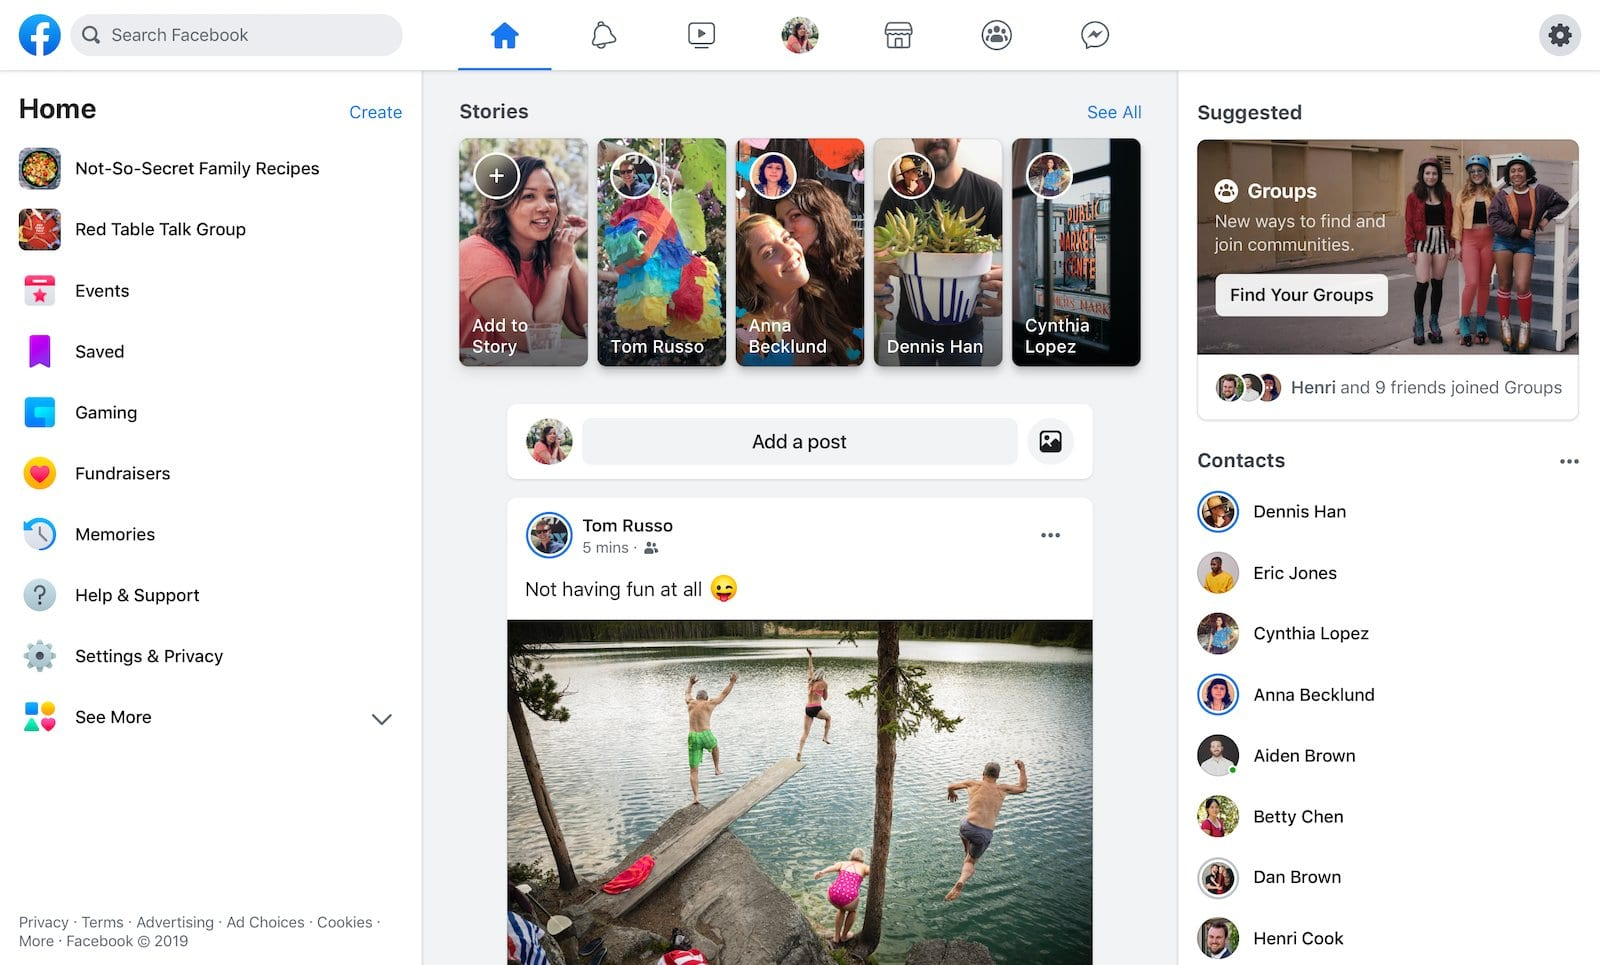 'The New Facebook' design begins rolling out